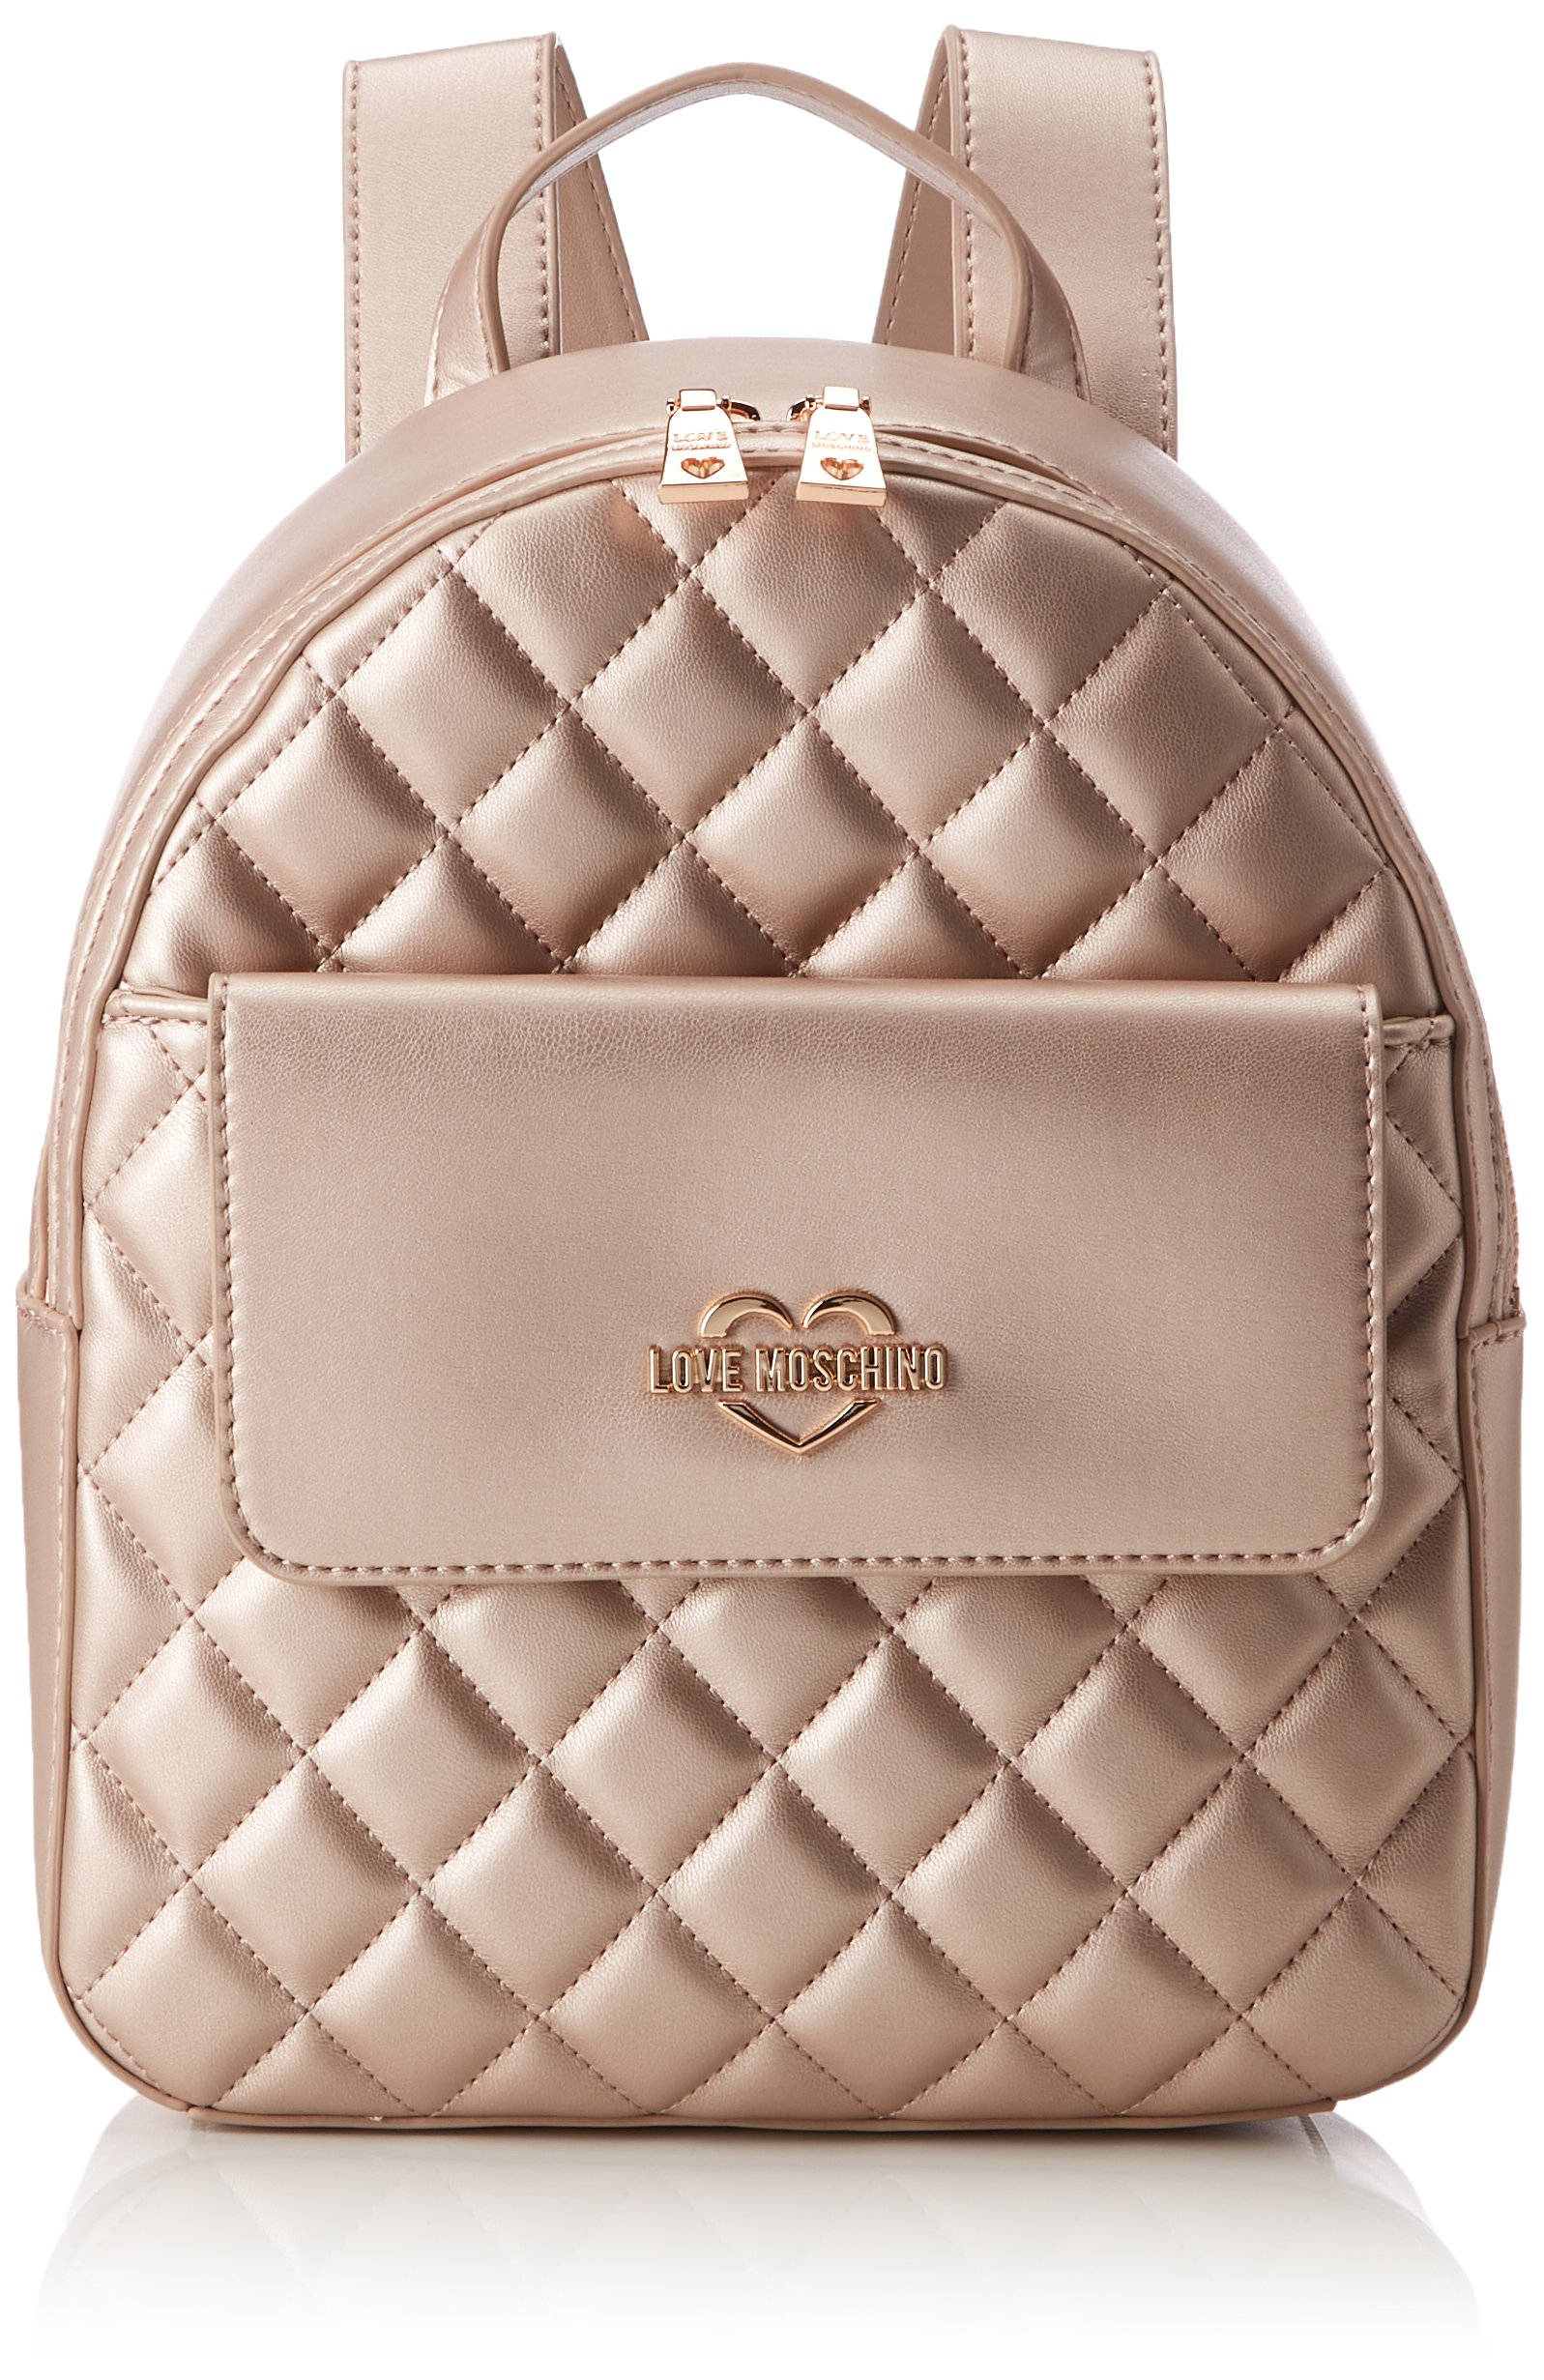 LOVE Moschino Women's Metallic Quilted Backpack Beige One Size